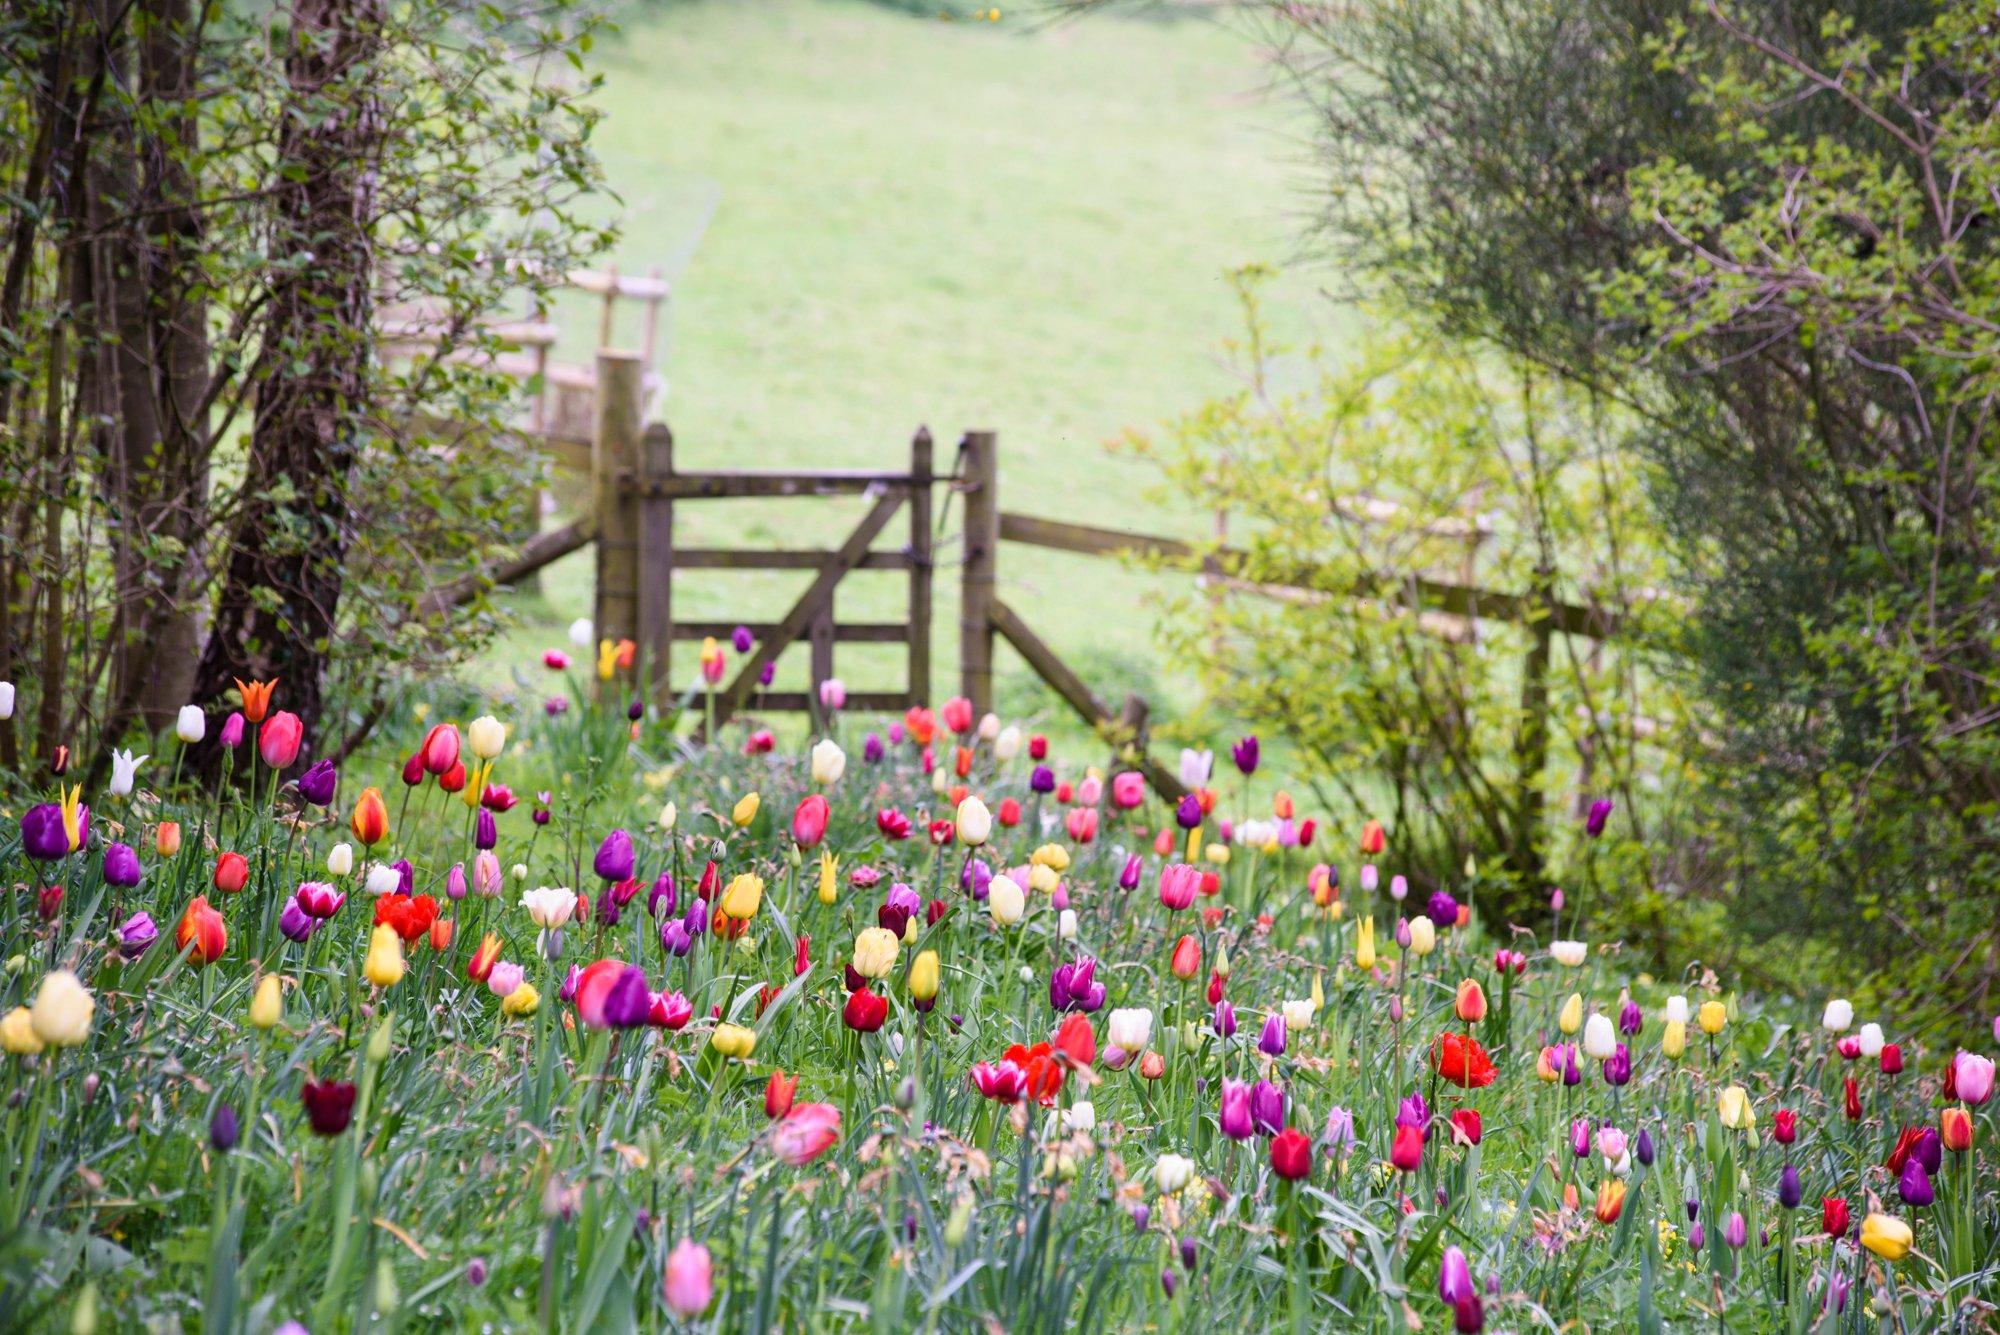 Meadow of tulips leading to a wooden gate